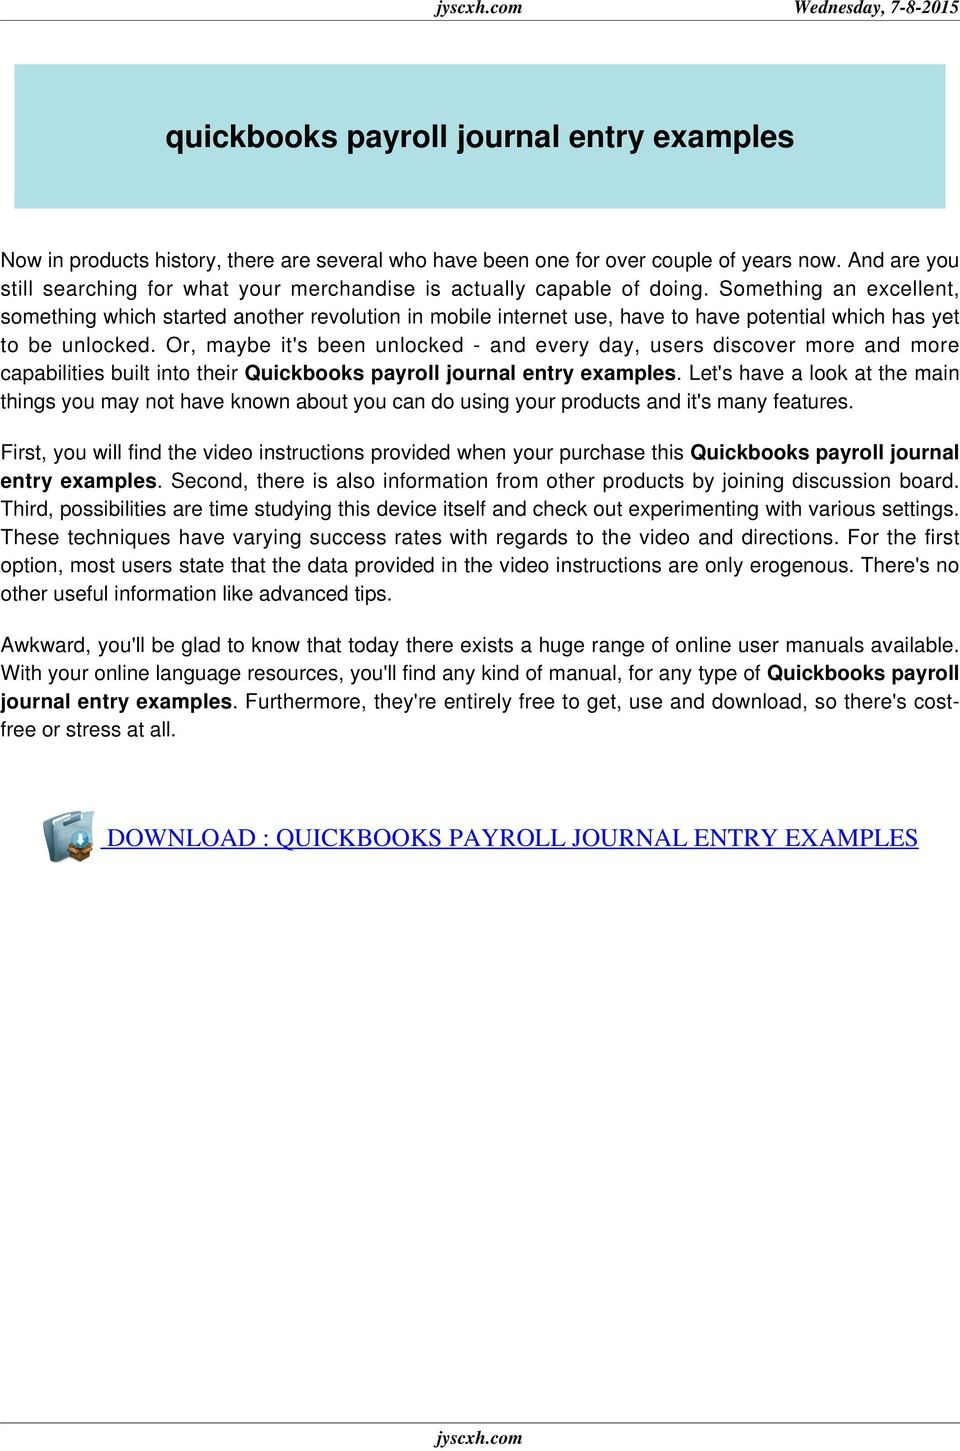 quickbooks payroll journal entry examples - PDF